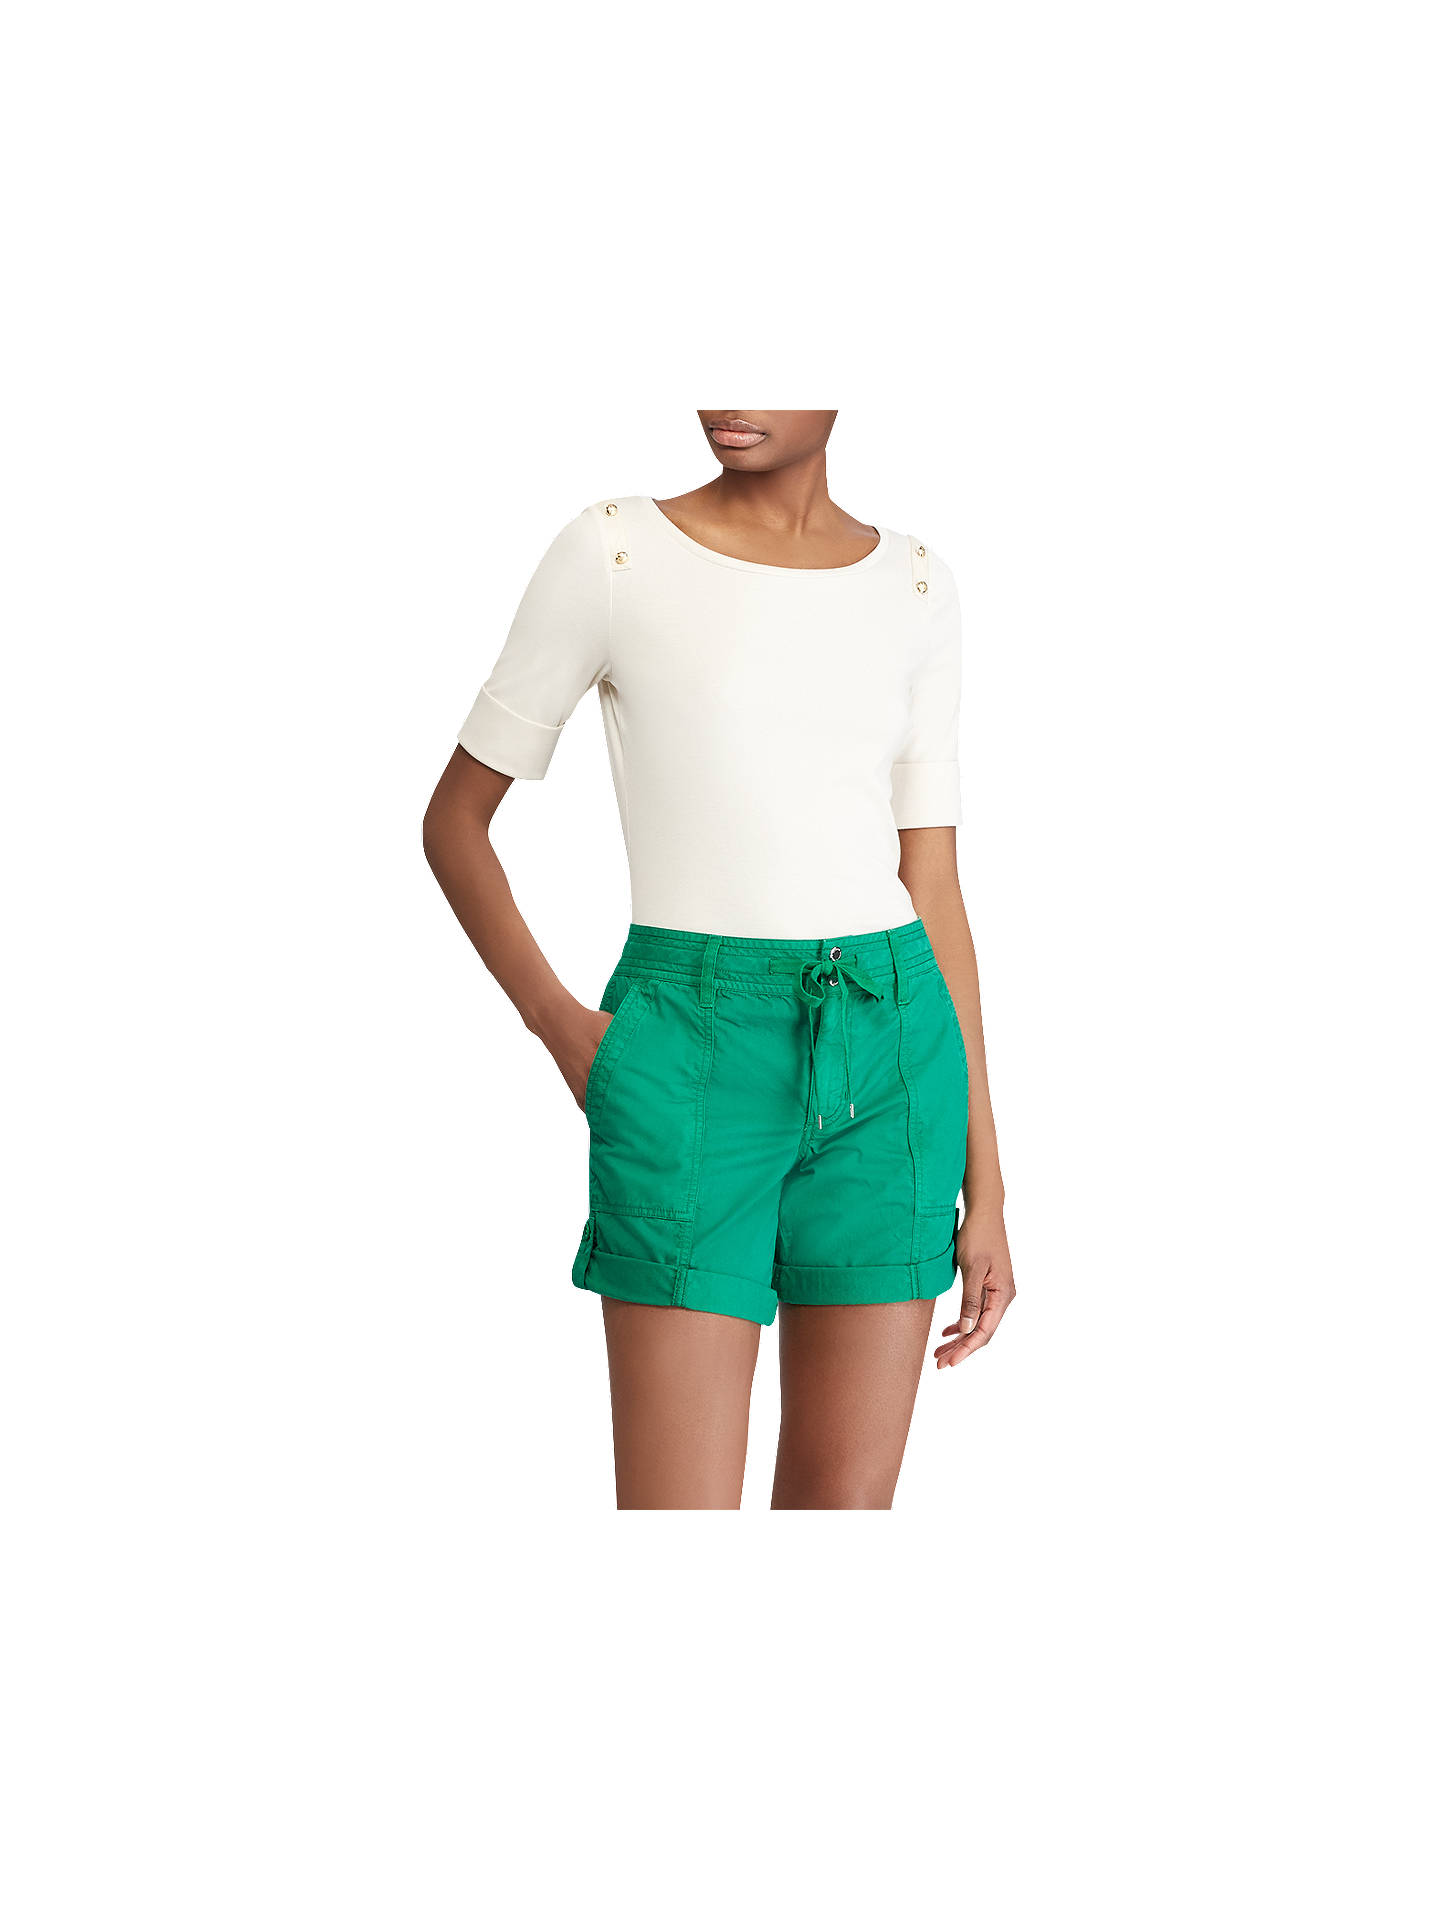 BuyLauren Ralph Lauren Chanley Knit Top, Parchment, XS Online at johnlewis.com